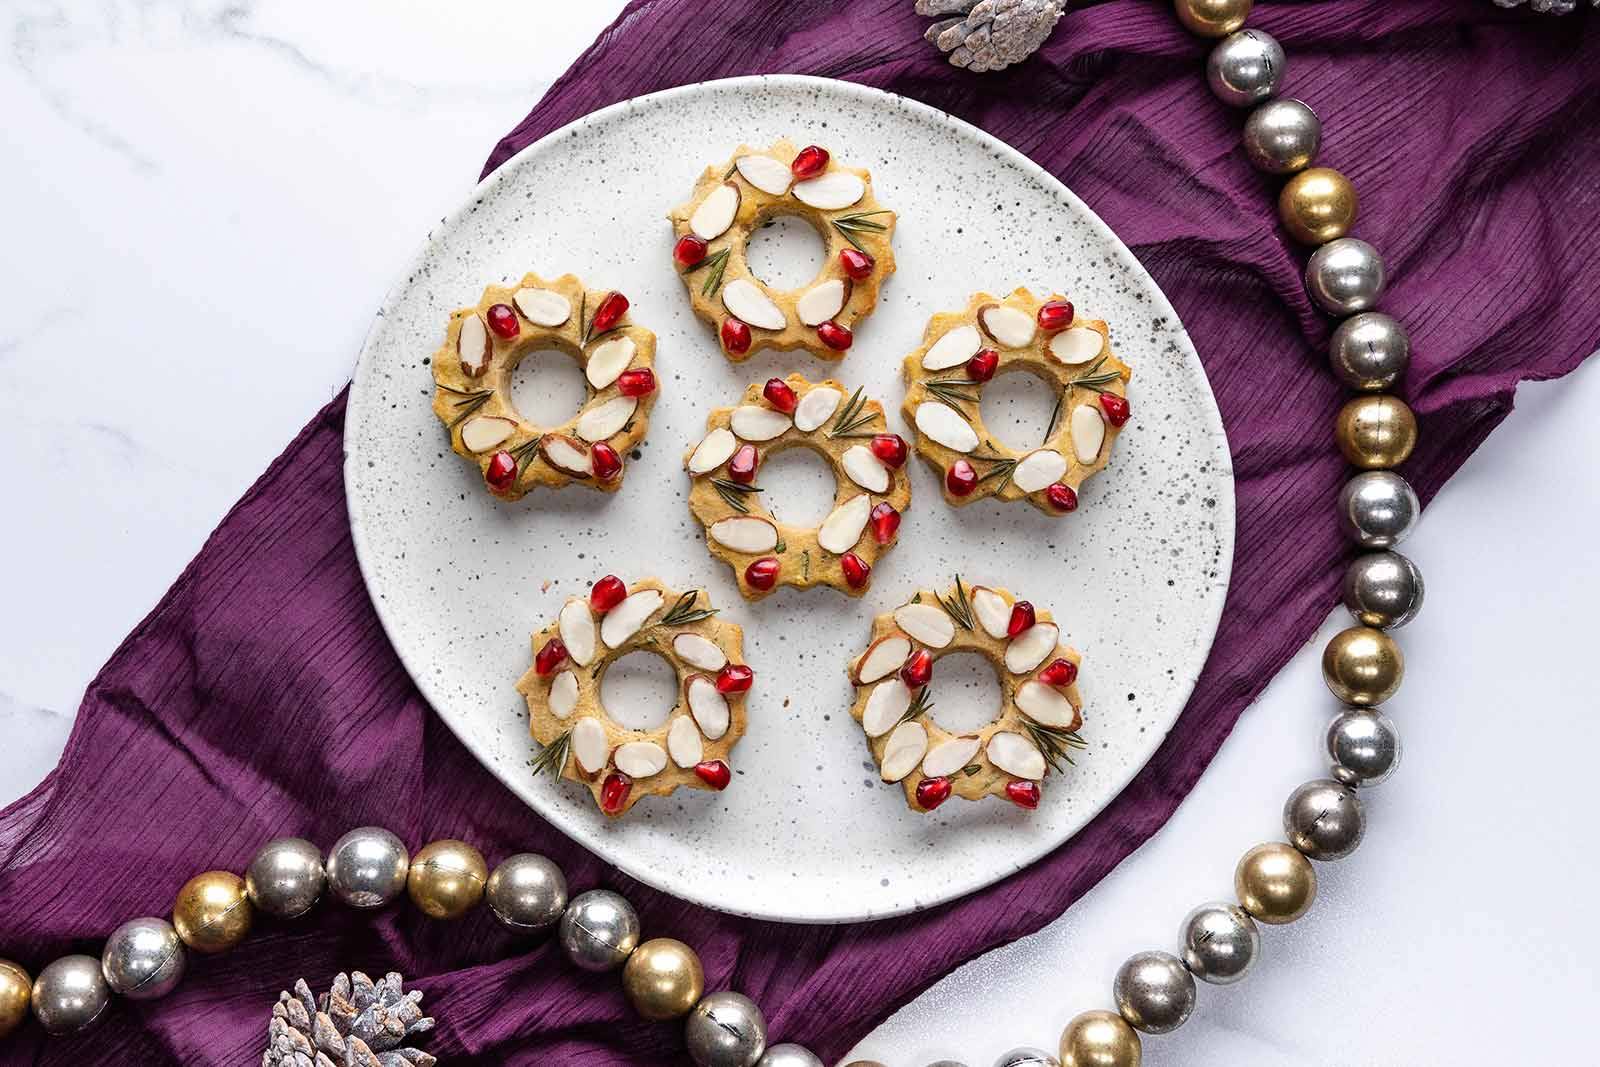 Rosemary Holiday Wreath Cookies